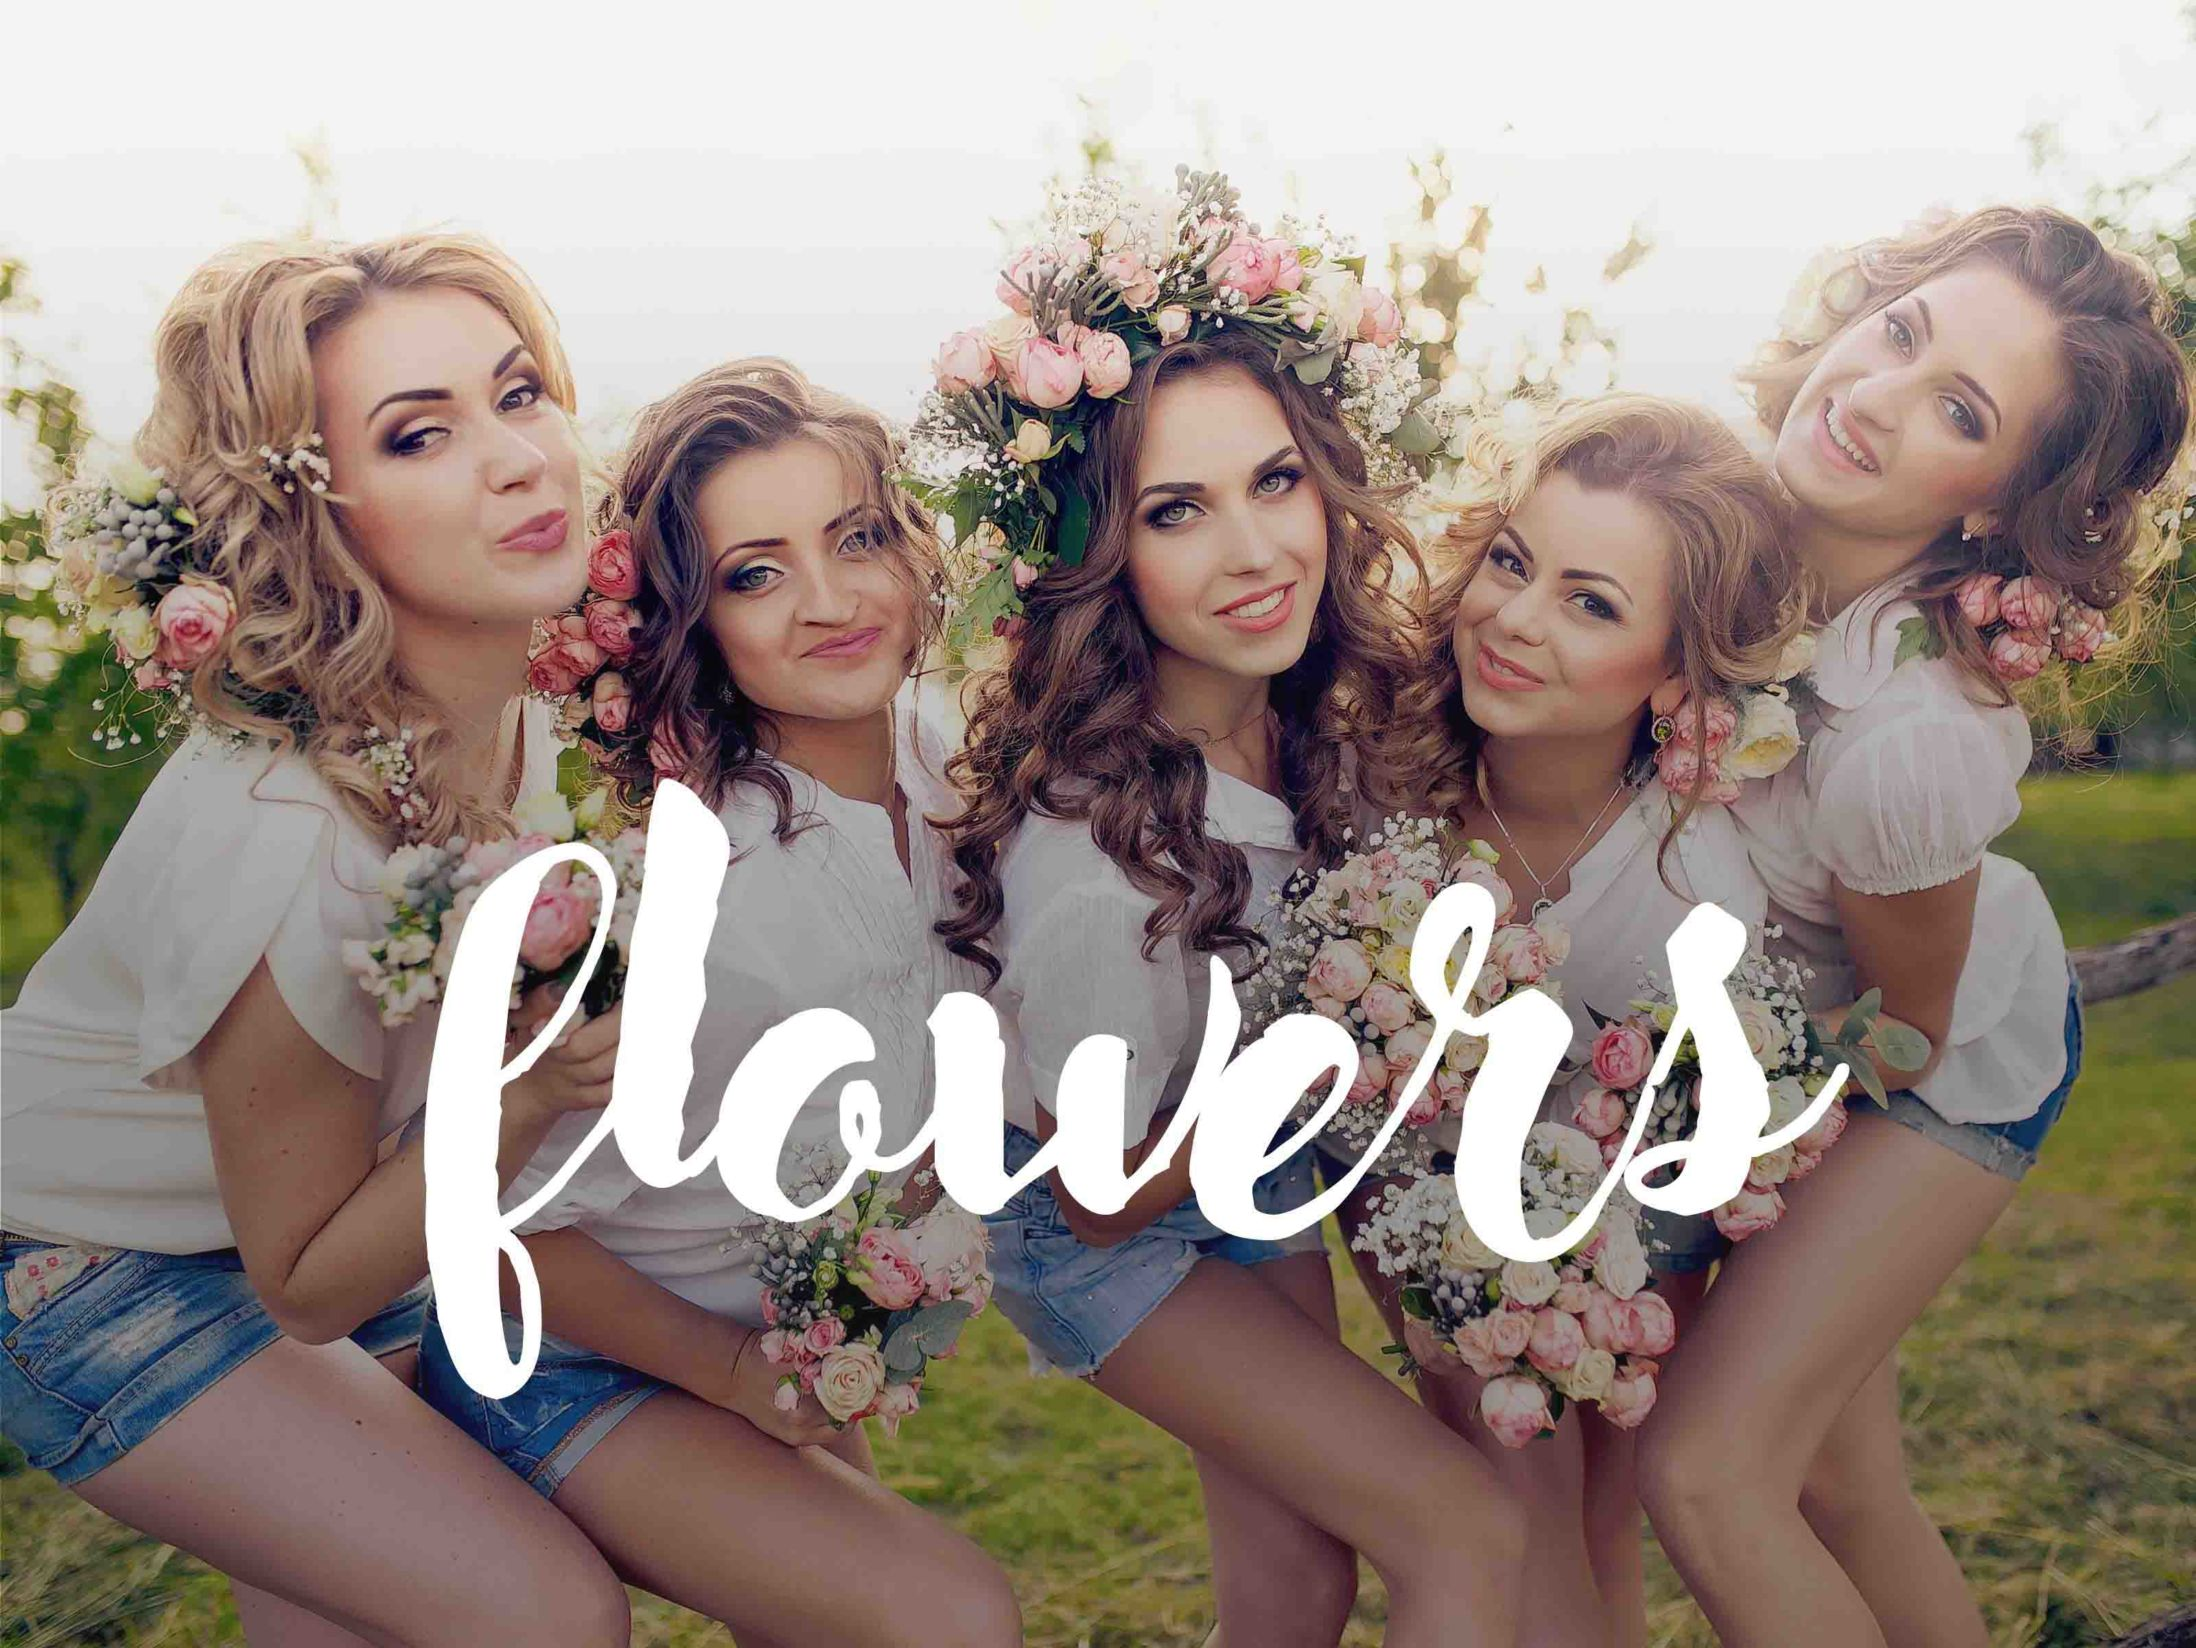 Flowers Hen Do Themes